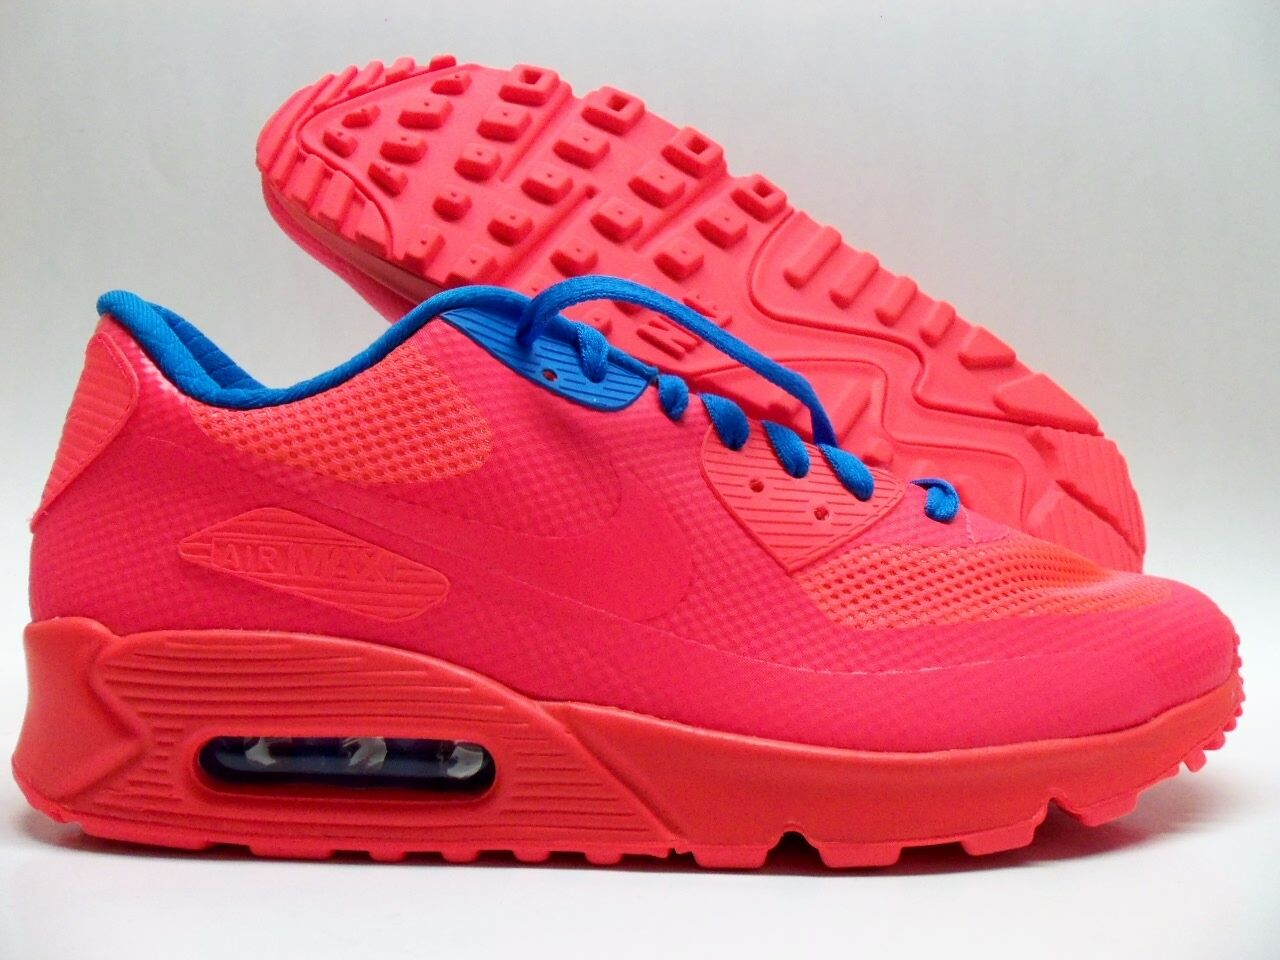 NIKE AIR MAX 90 HYPERFUSE PREMIUM ID SOLAR RED/BLUE SIZE MEN'S 10 Price reduction best-selling model of the brand